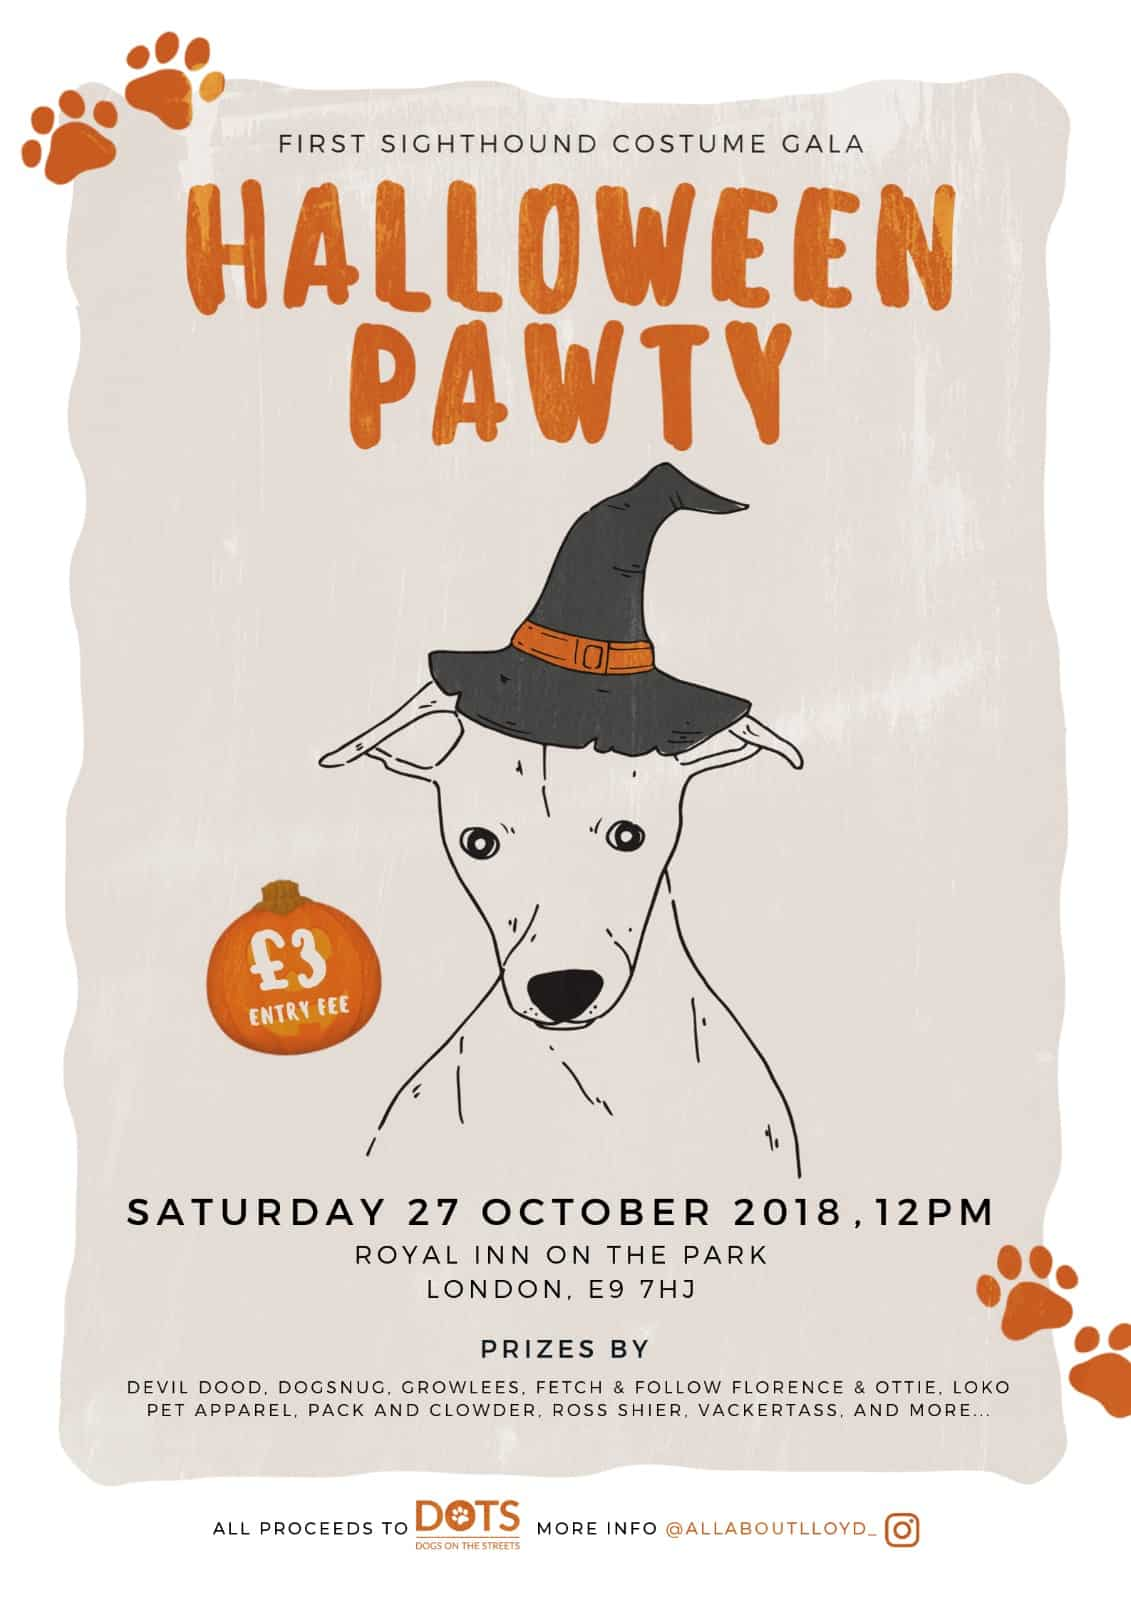 Sighthound Costume Gala Halloween Pawty